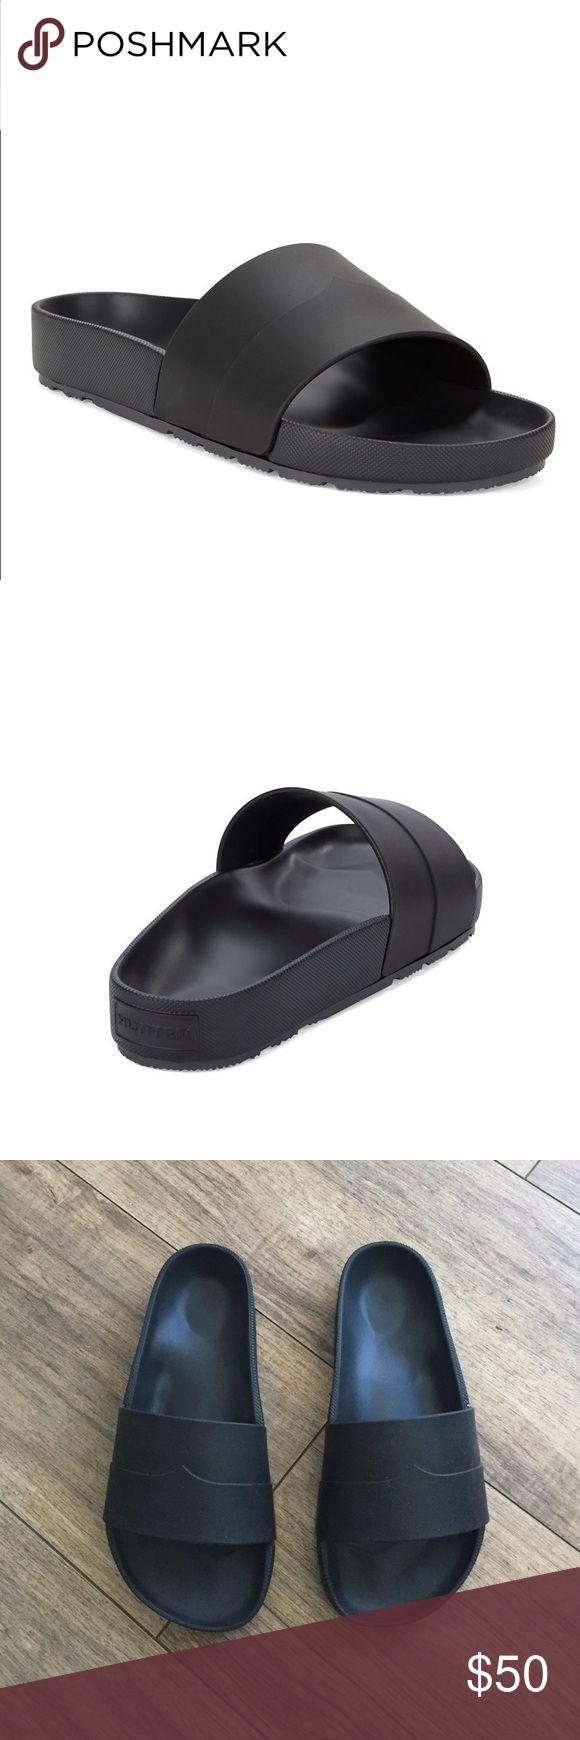 Hunter black mustache slide sandals Silicone/rubber material. Sole is like the Birkenstocks shape. Made in Italy. Size UK 3, US 5. Super comfy. New no box. Hunter Boots Shoes Sandals